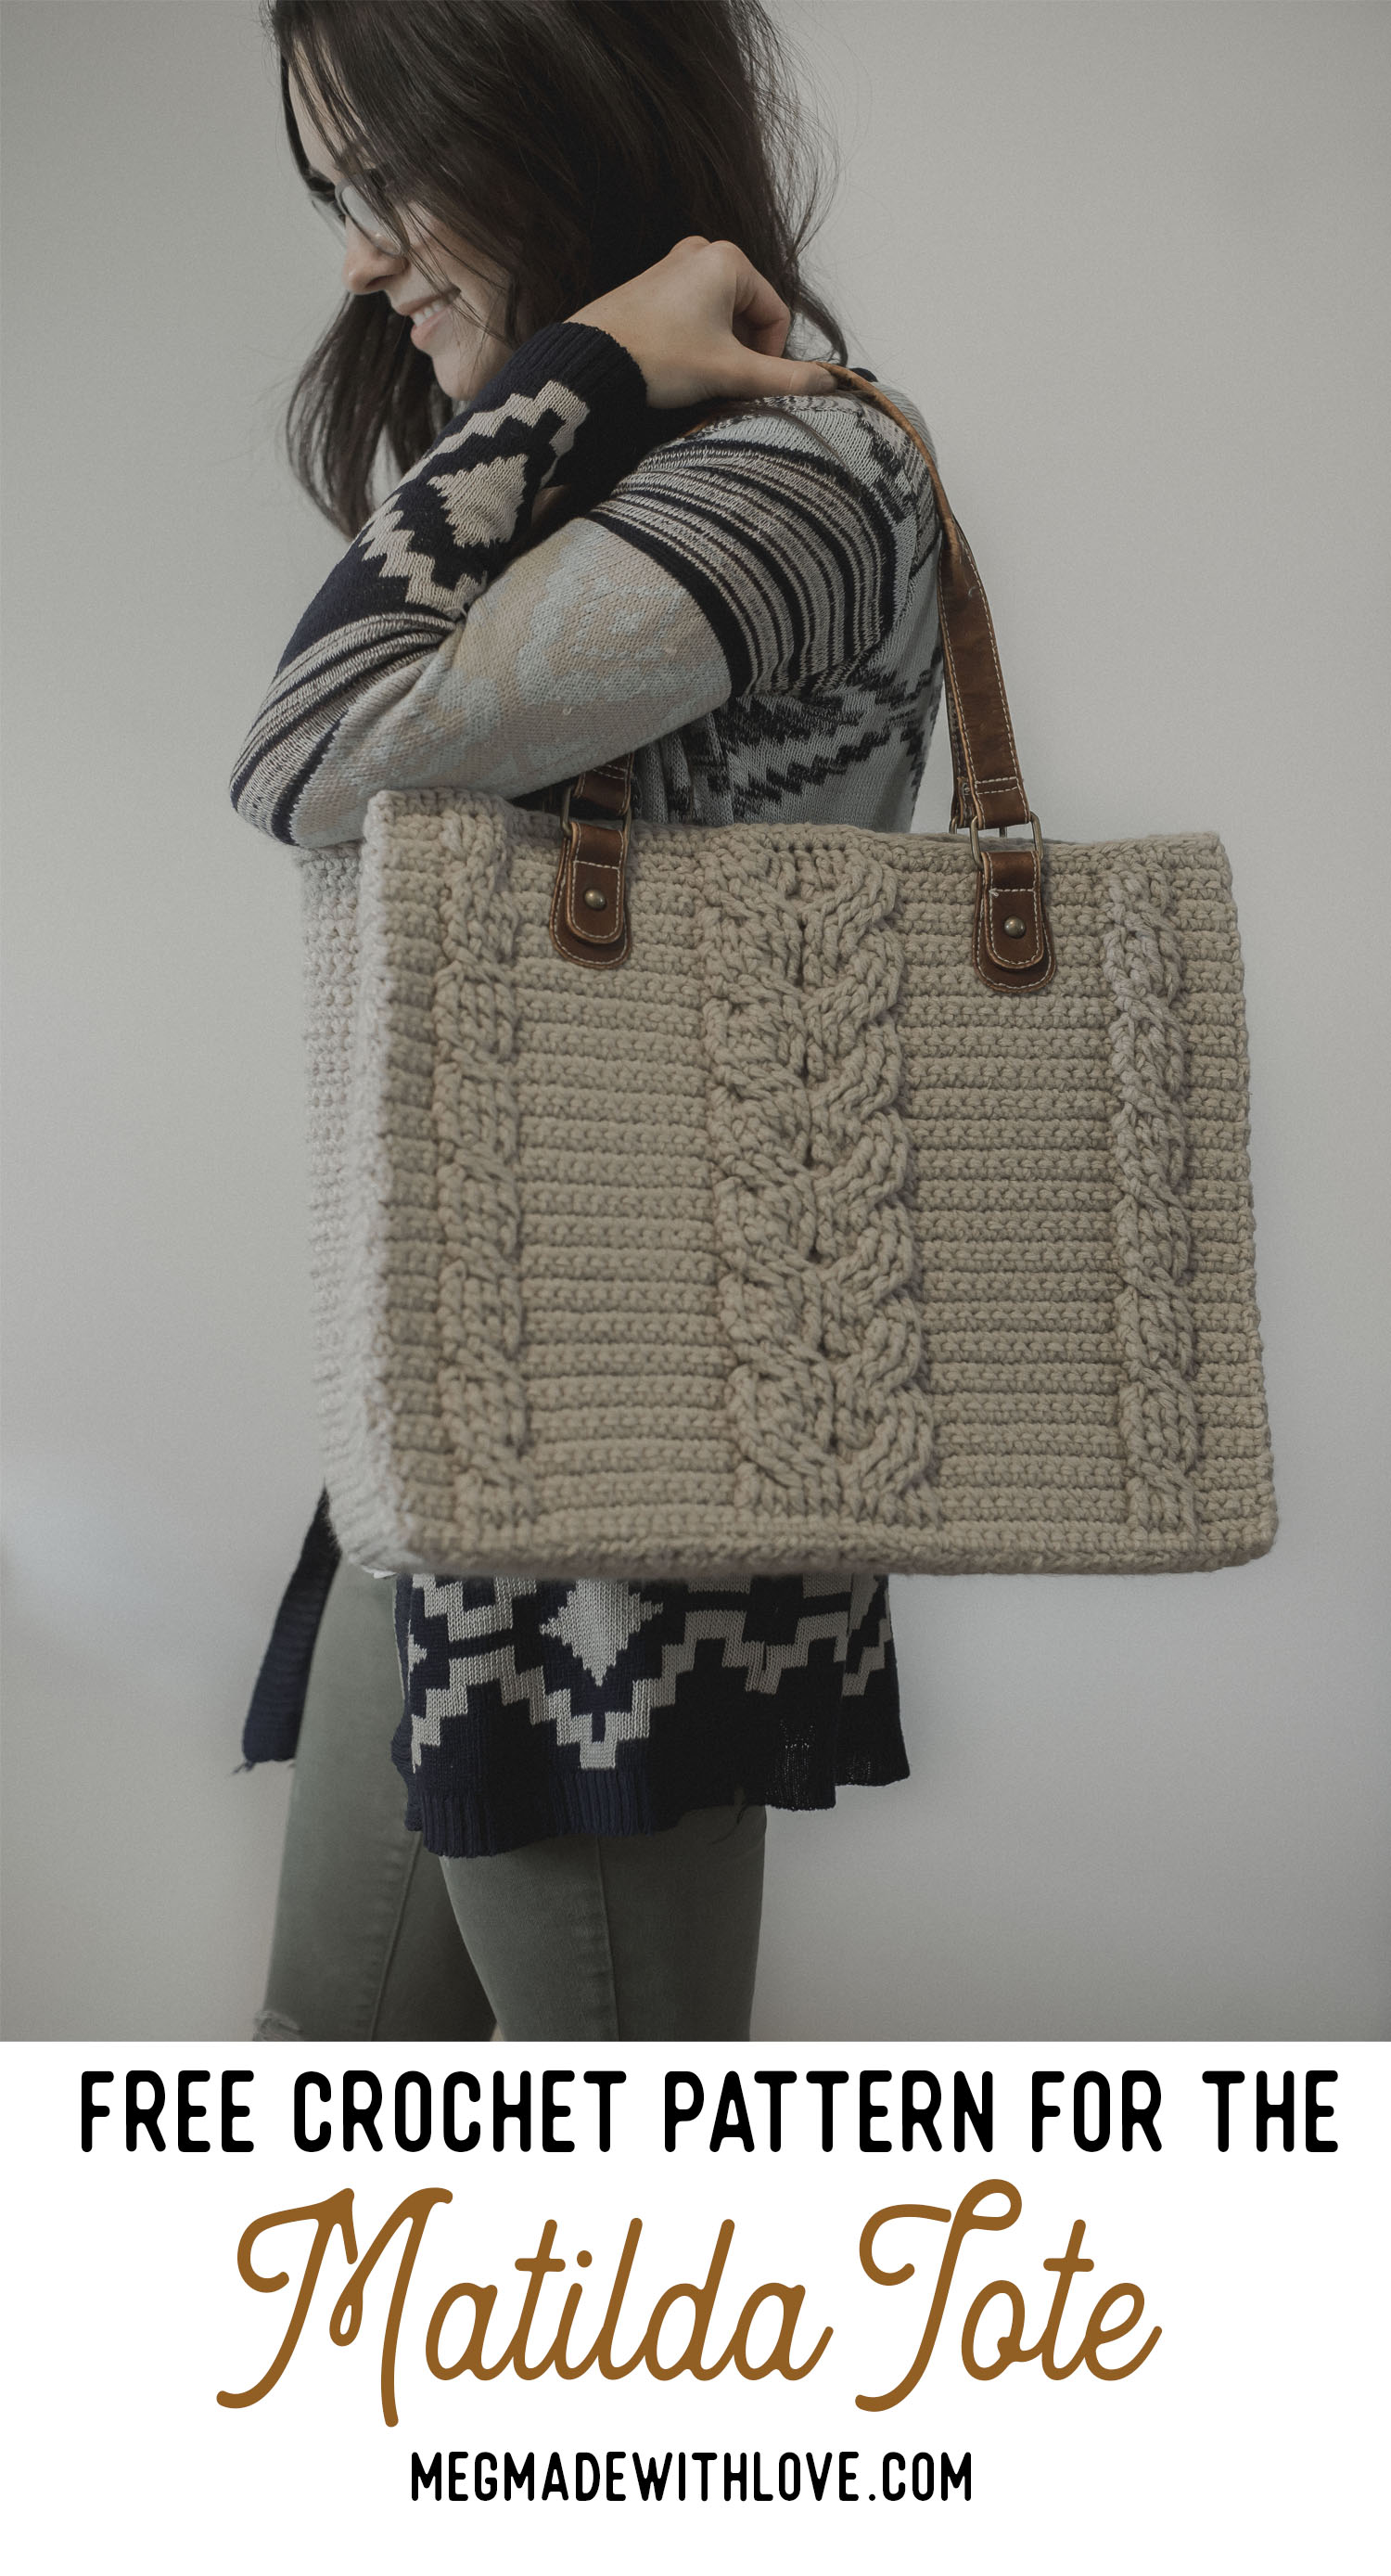 Free Crochet Pattern For The Matilda Tote Crochet Cables Bag Megmade With Love